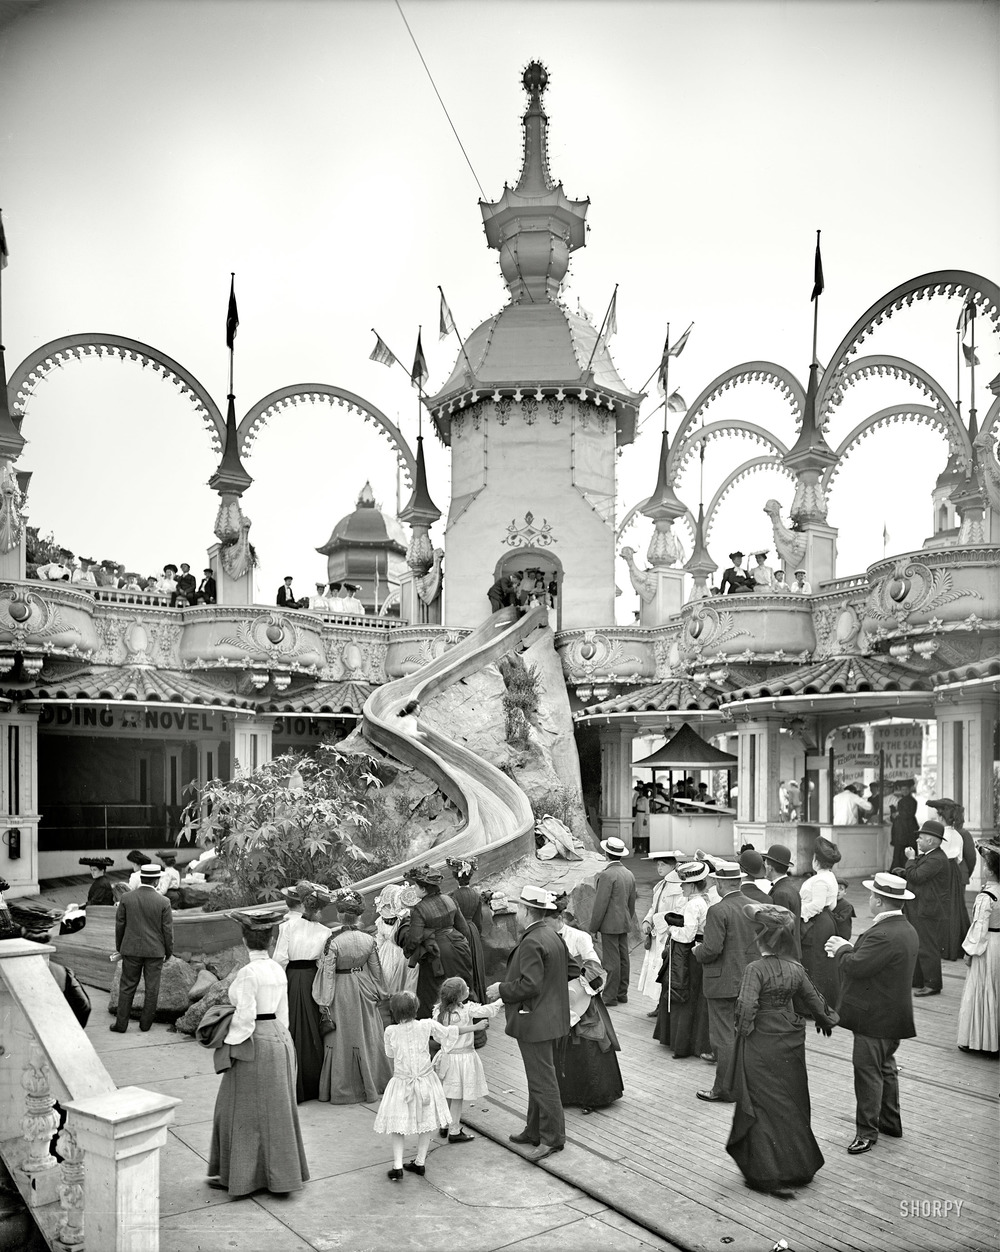 The Helter Skelter Ride, Luna Park, 1905. (h/t Shorpy)